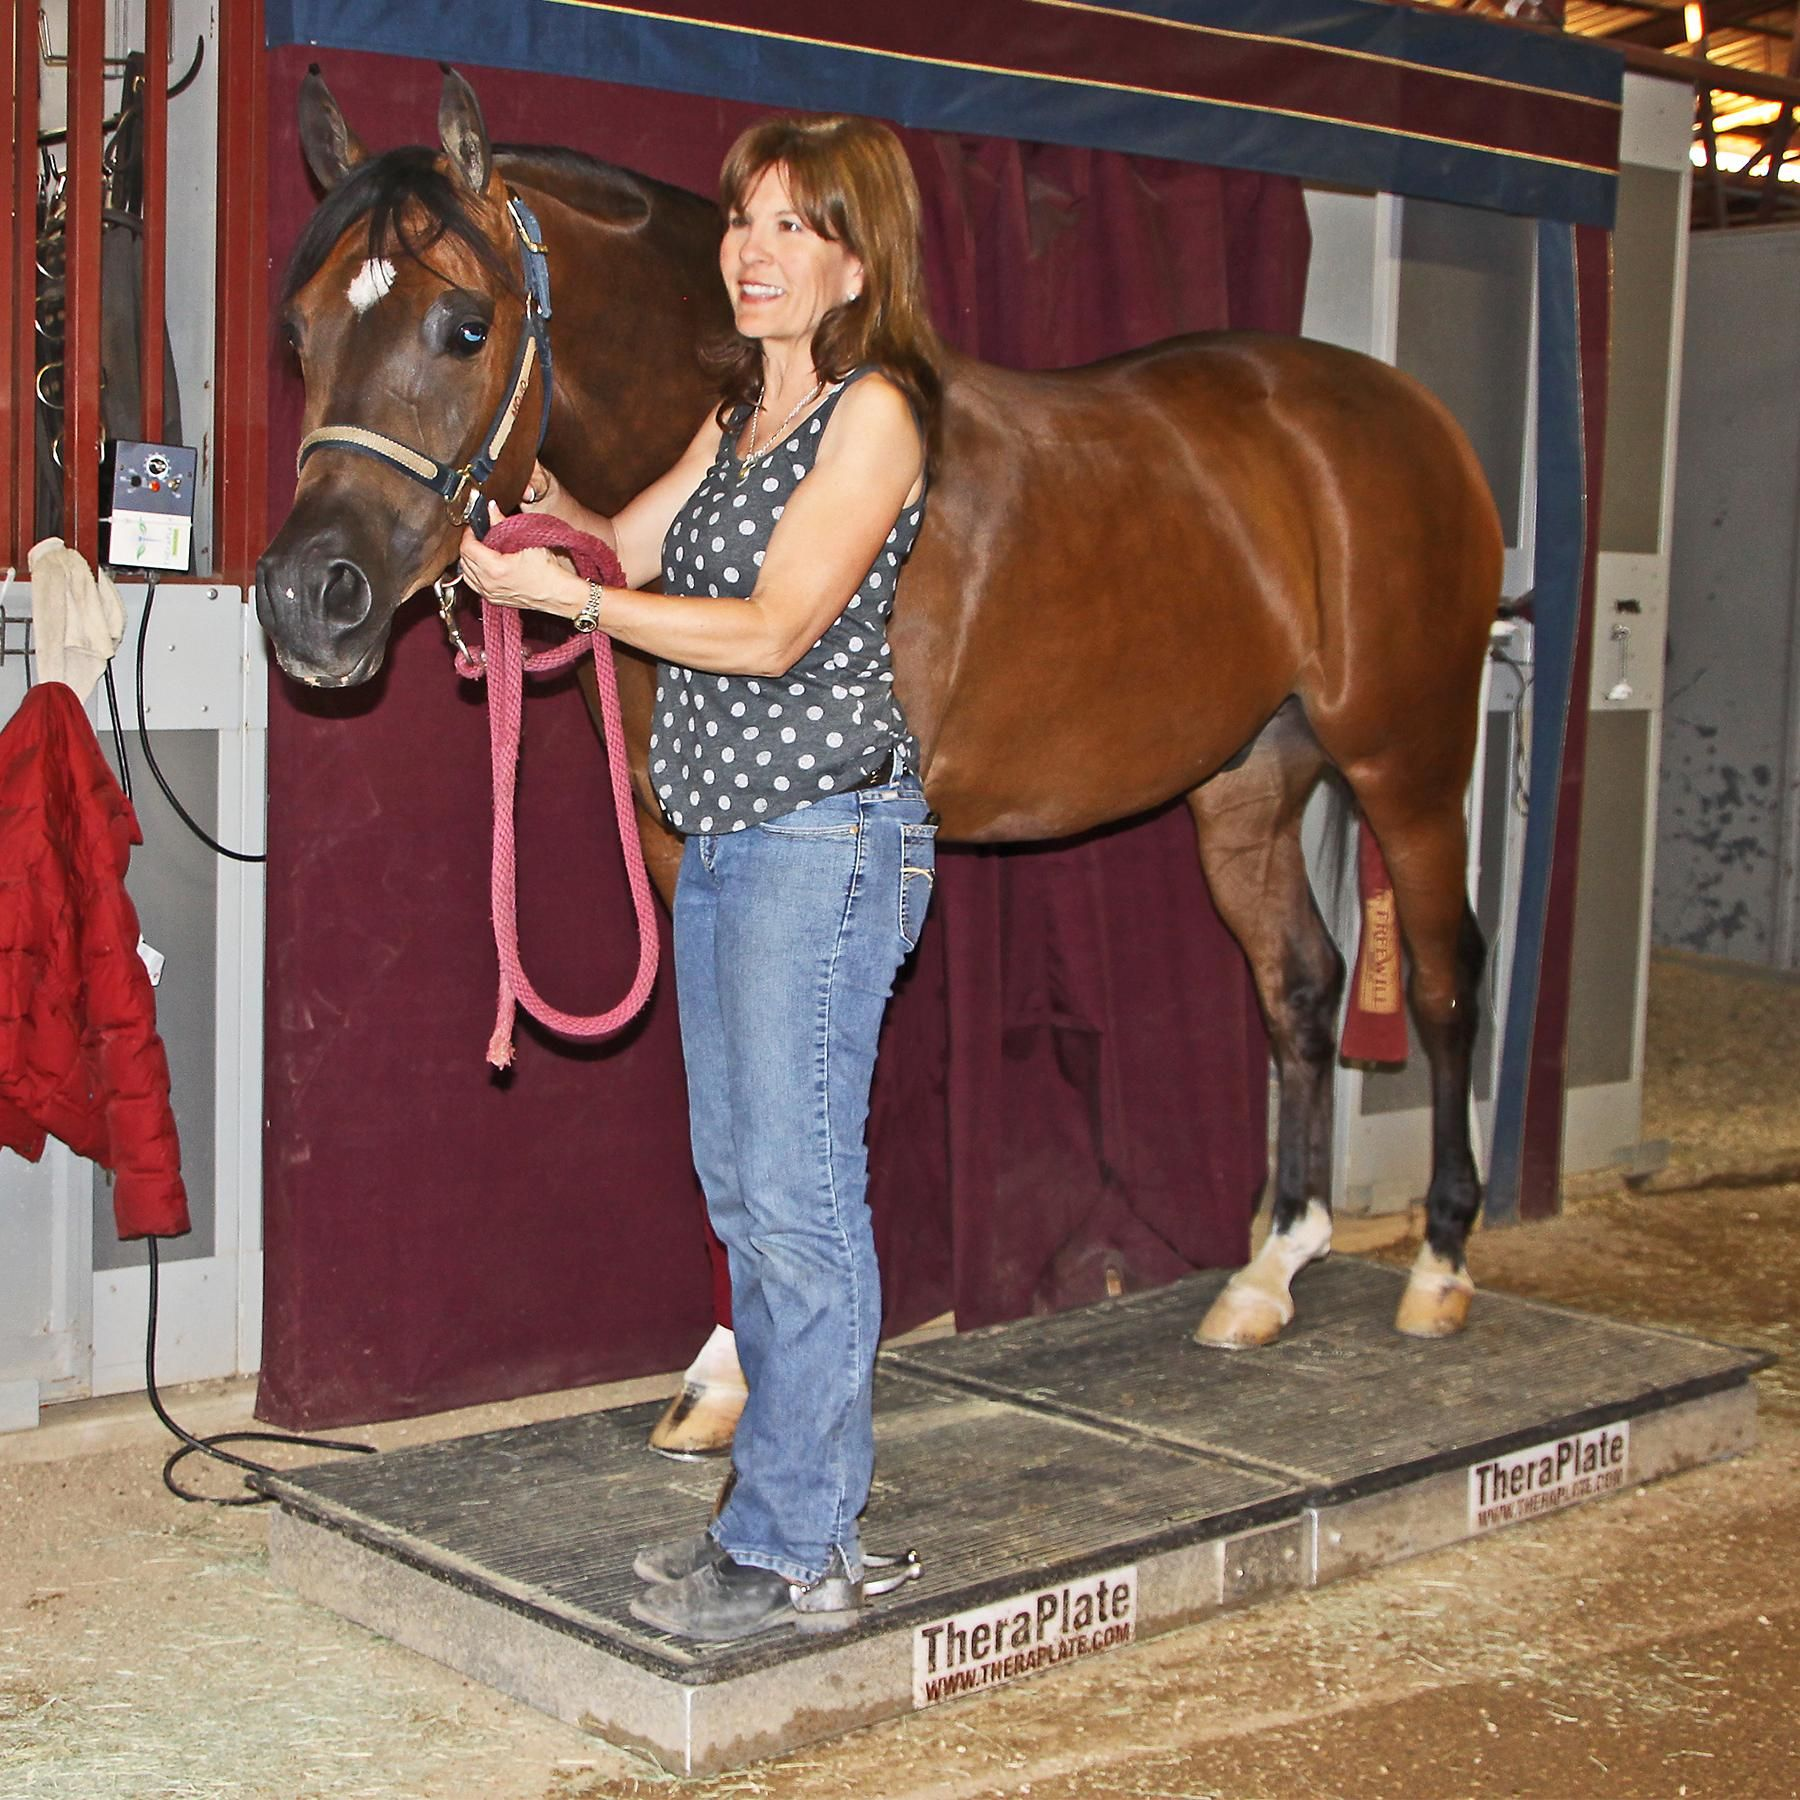 Theraplate Equine In Theraplate Equine Massage Equines Horse Care